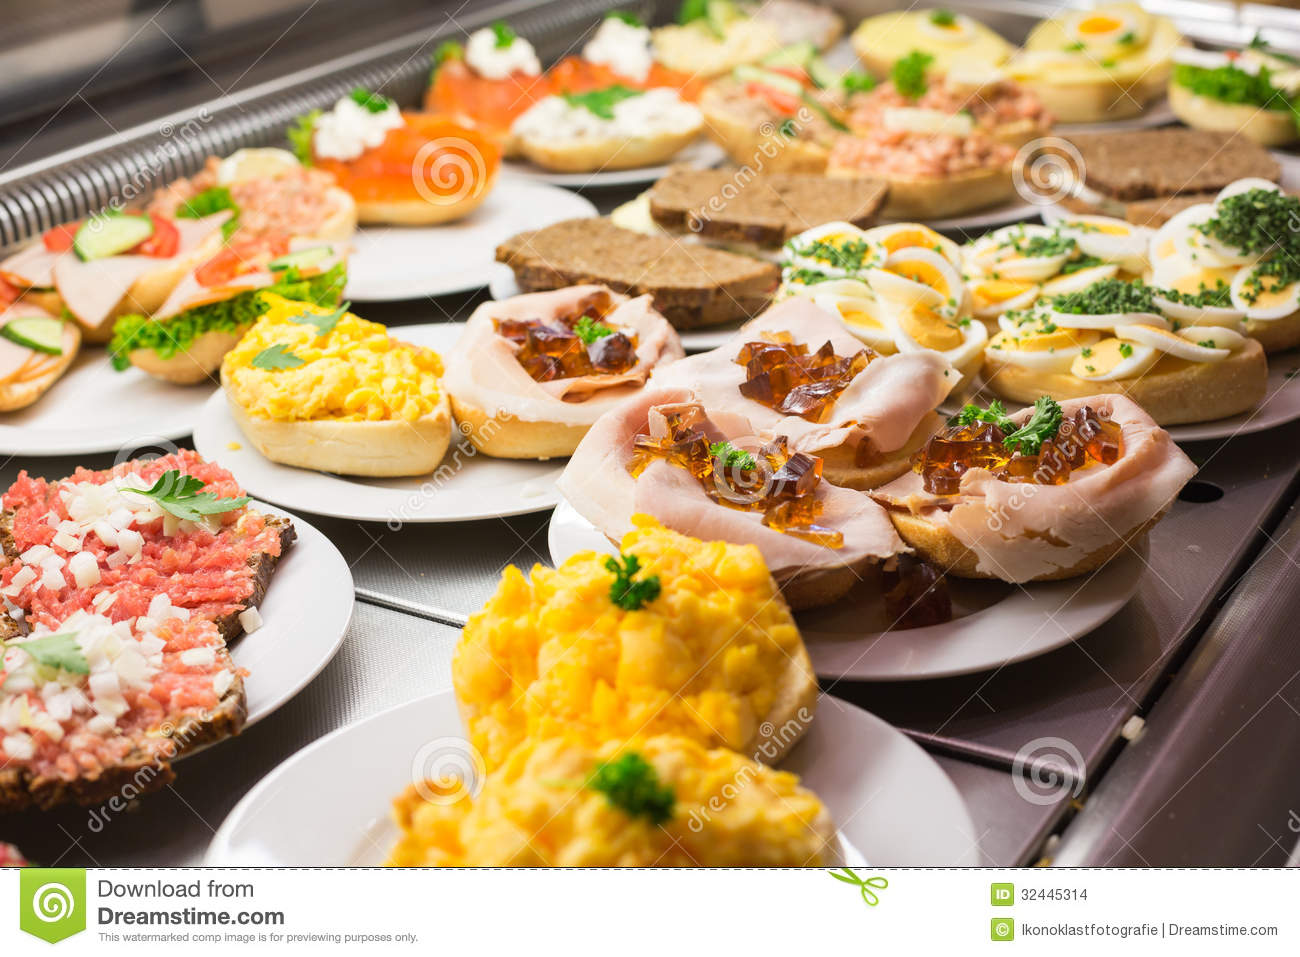 Sandwiches With Cold Cuts On A Tray Stock Photo Image Of Pastry Cuisine 32445314